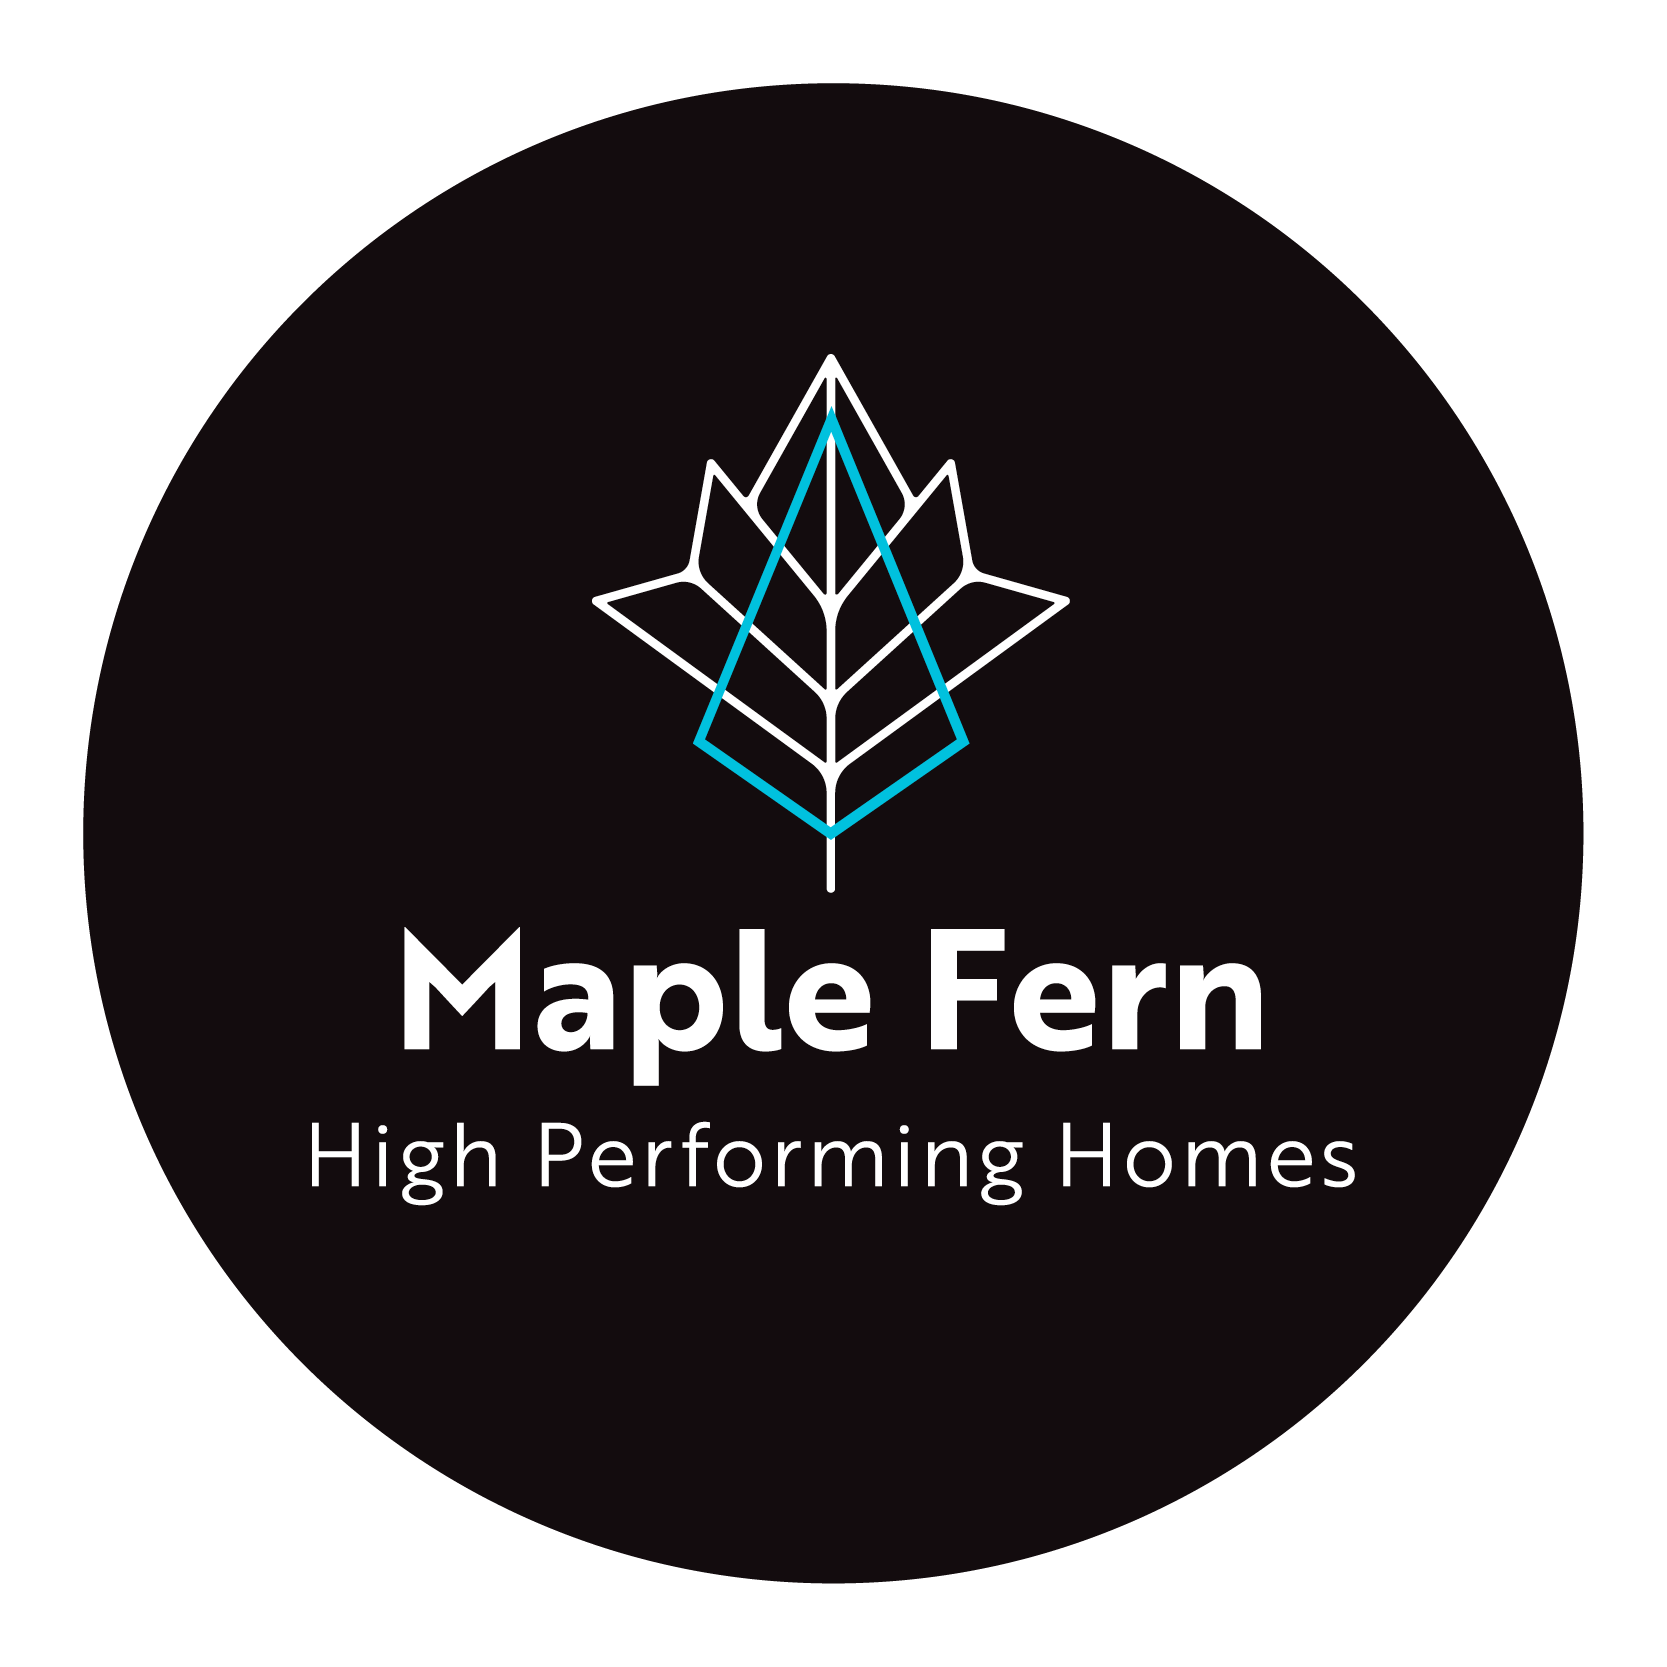 maplefernlogo.png